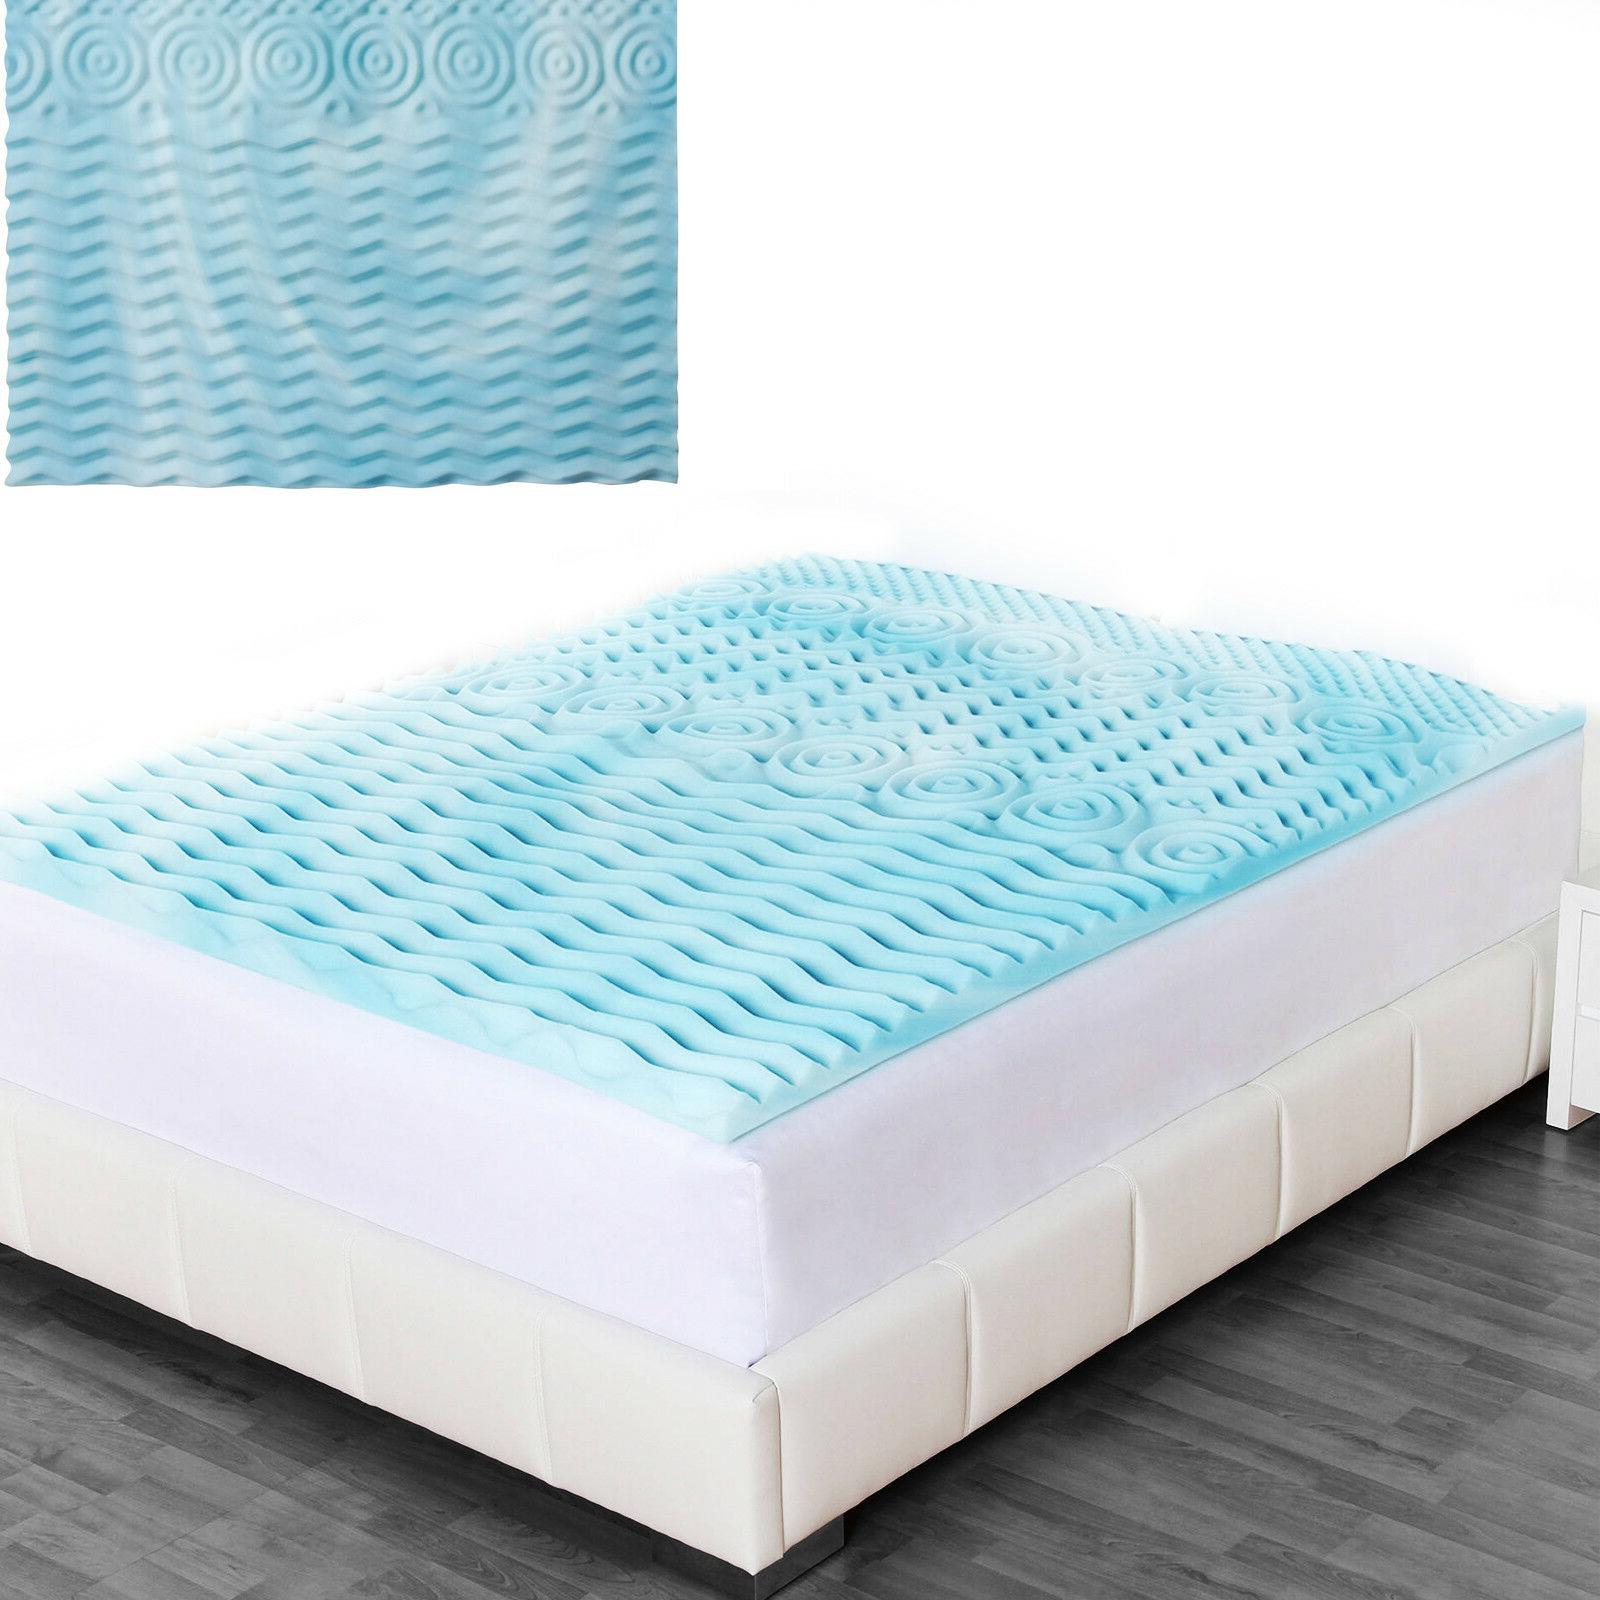 "MEMORY FOAM MATTRESS TOPPER 2"" Orthopedic Pad 5 Zone Hypoall"